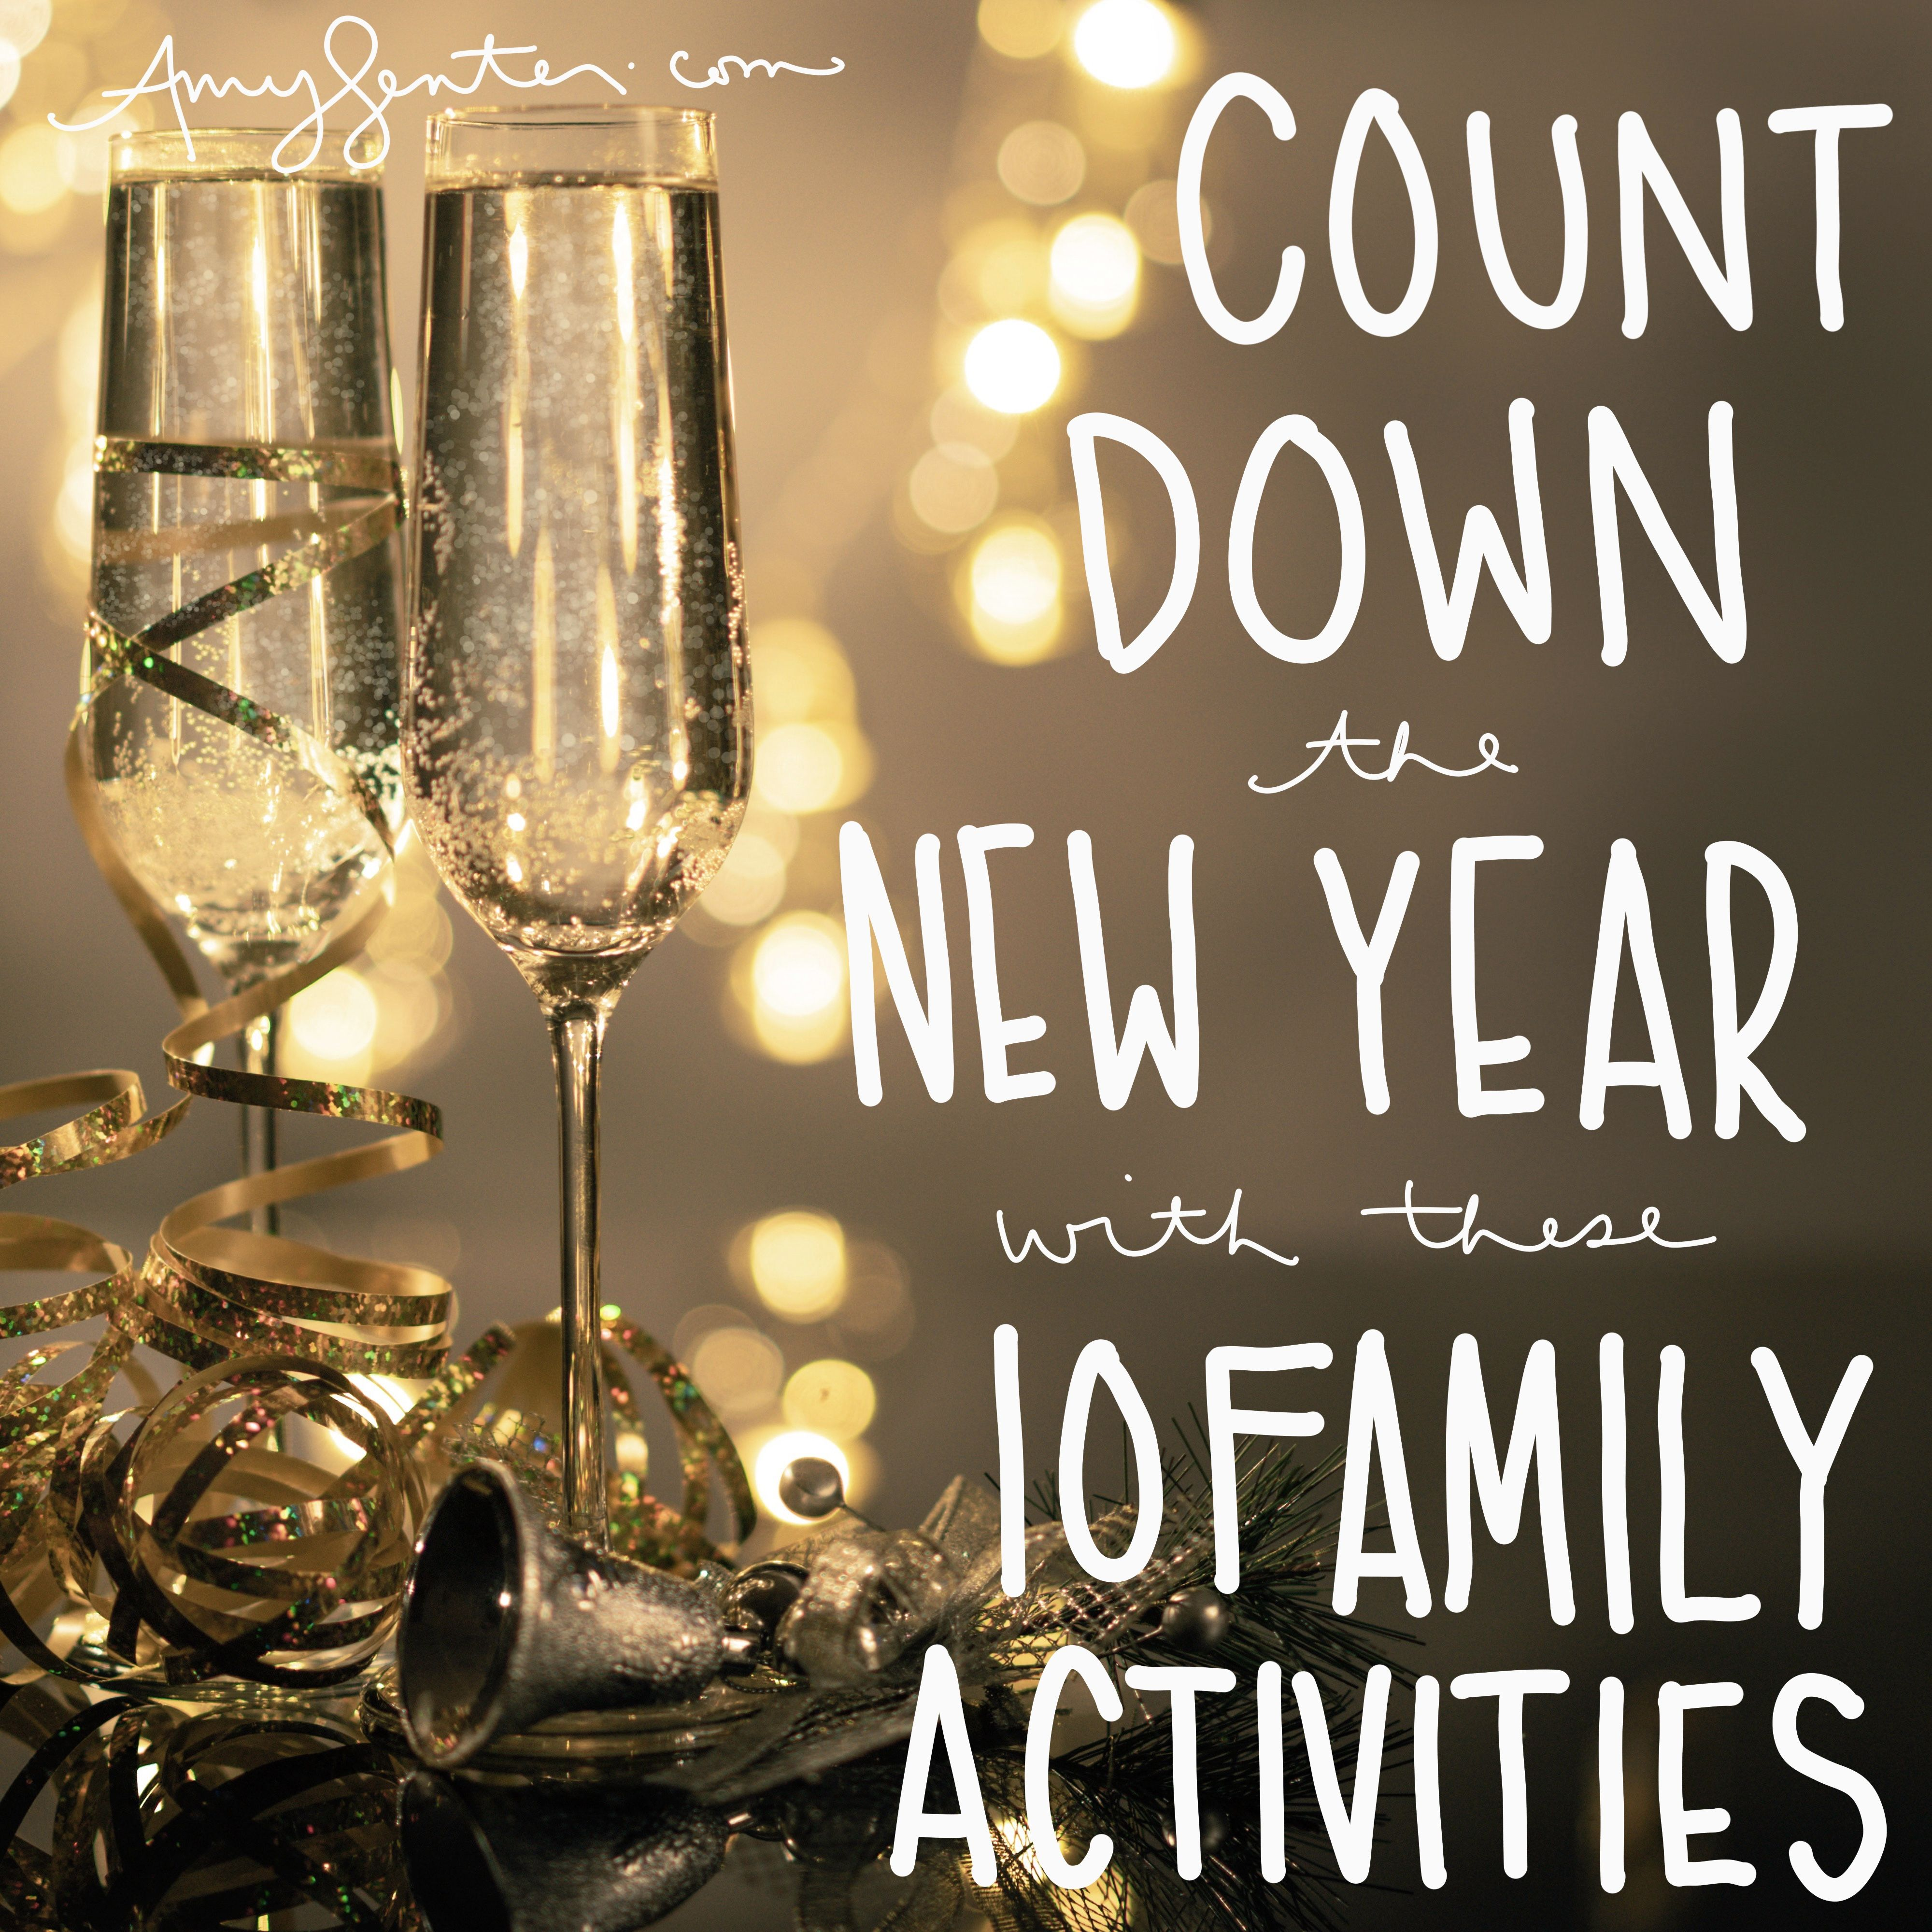 Countdown The New Year With These 10 Family Activities